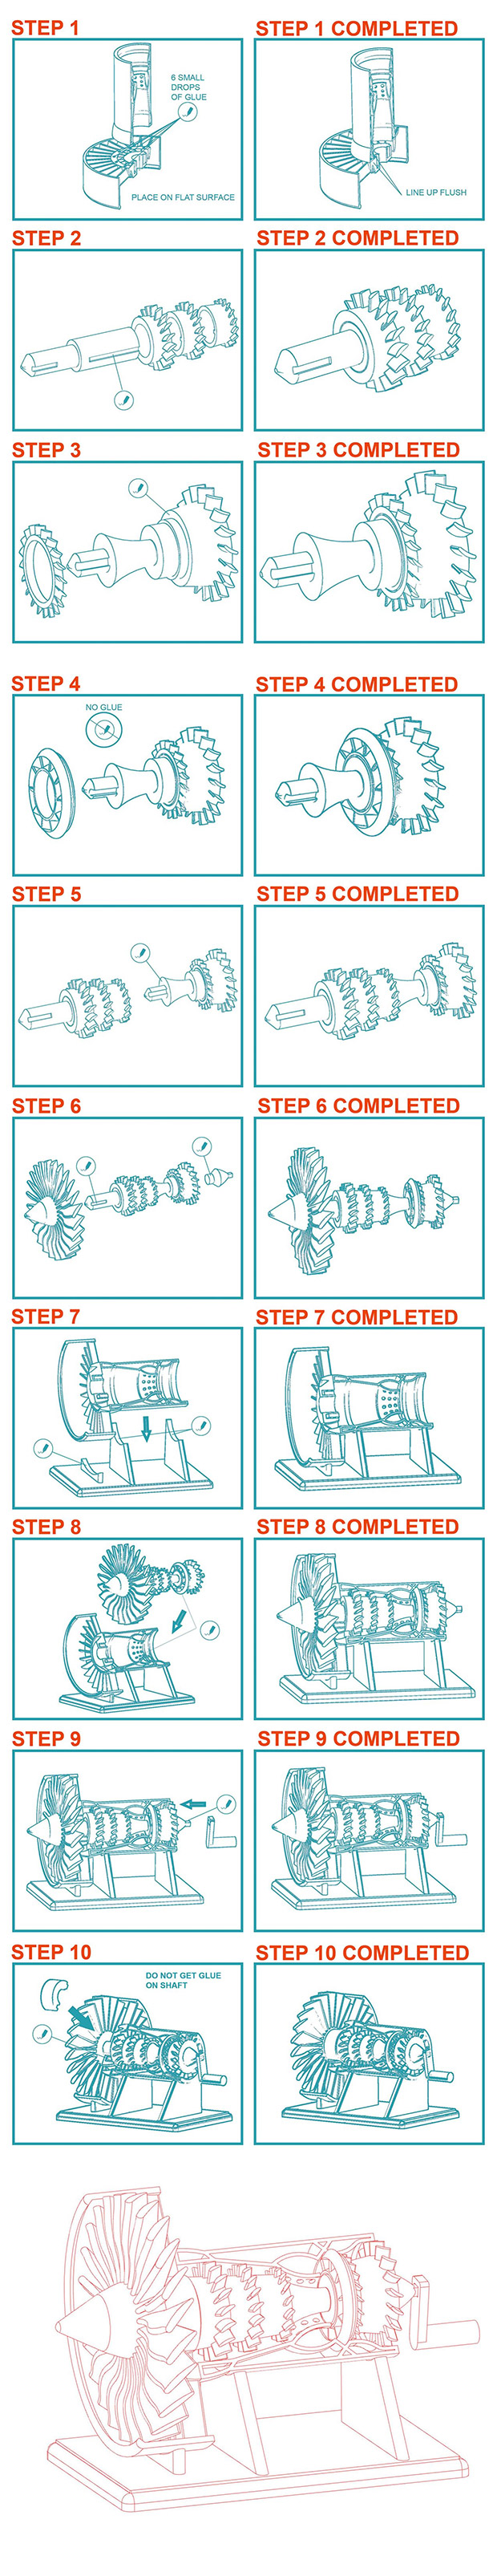 3d_printed_jet_engine_instructions